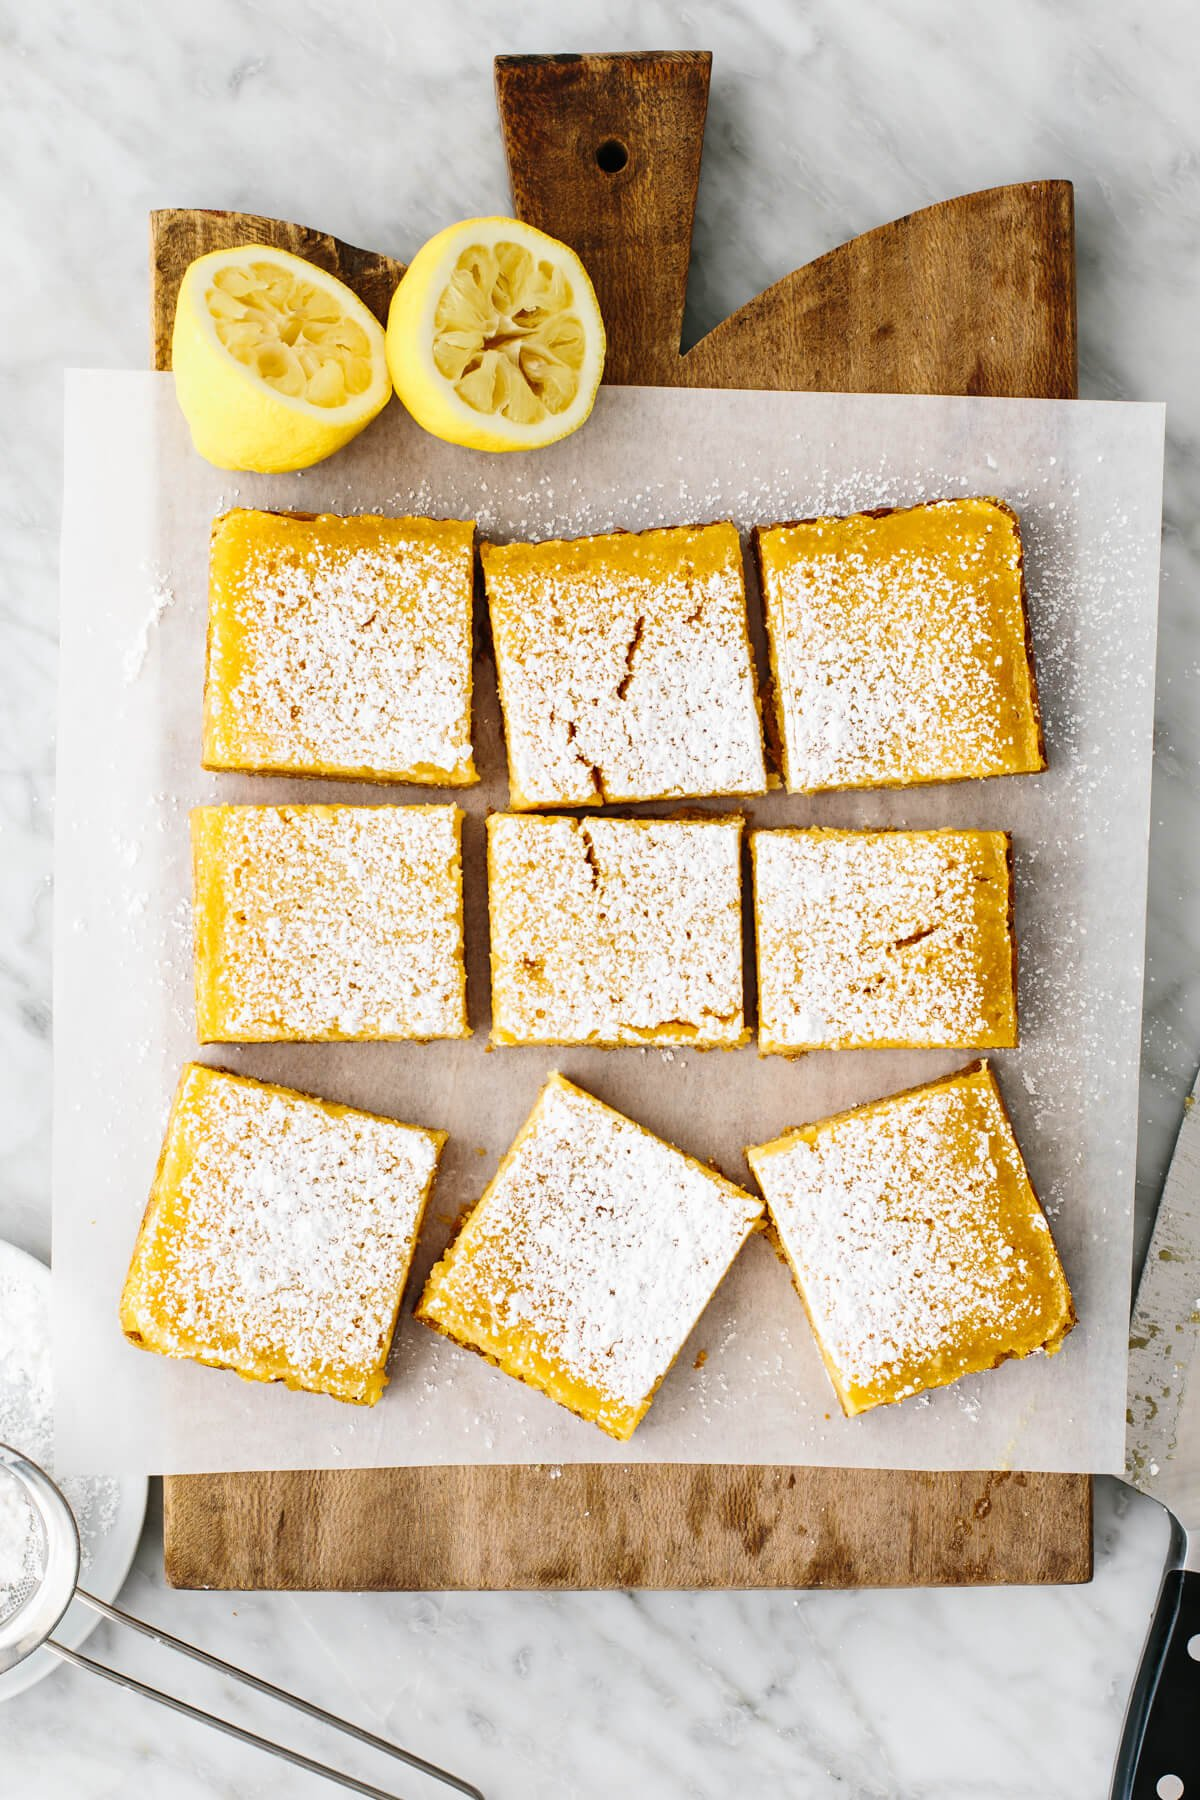 A board with lemon bars on top and lemons.